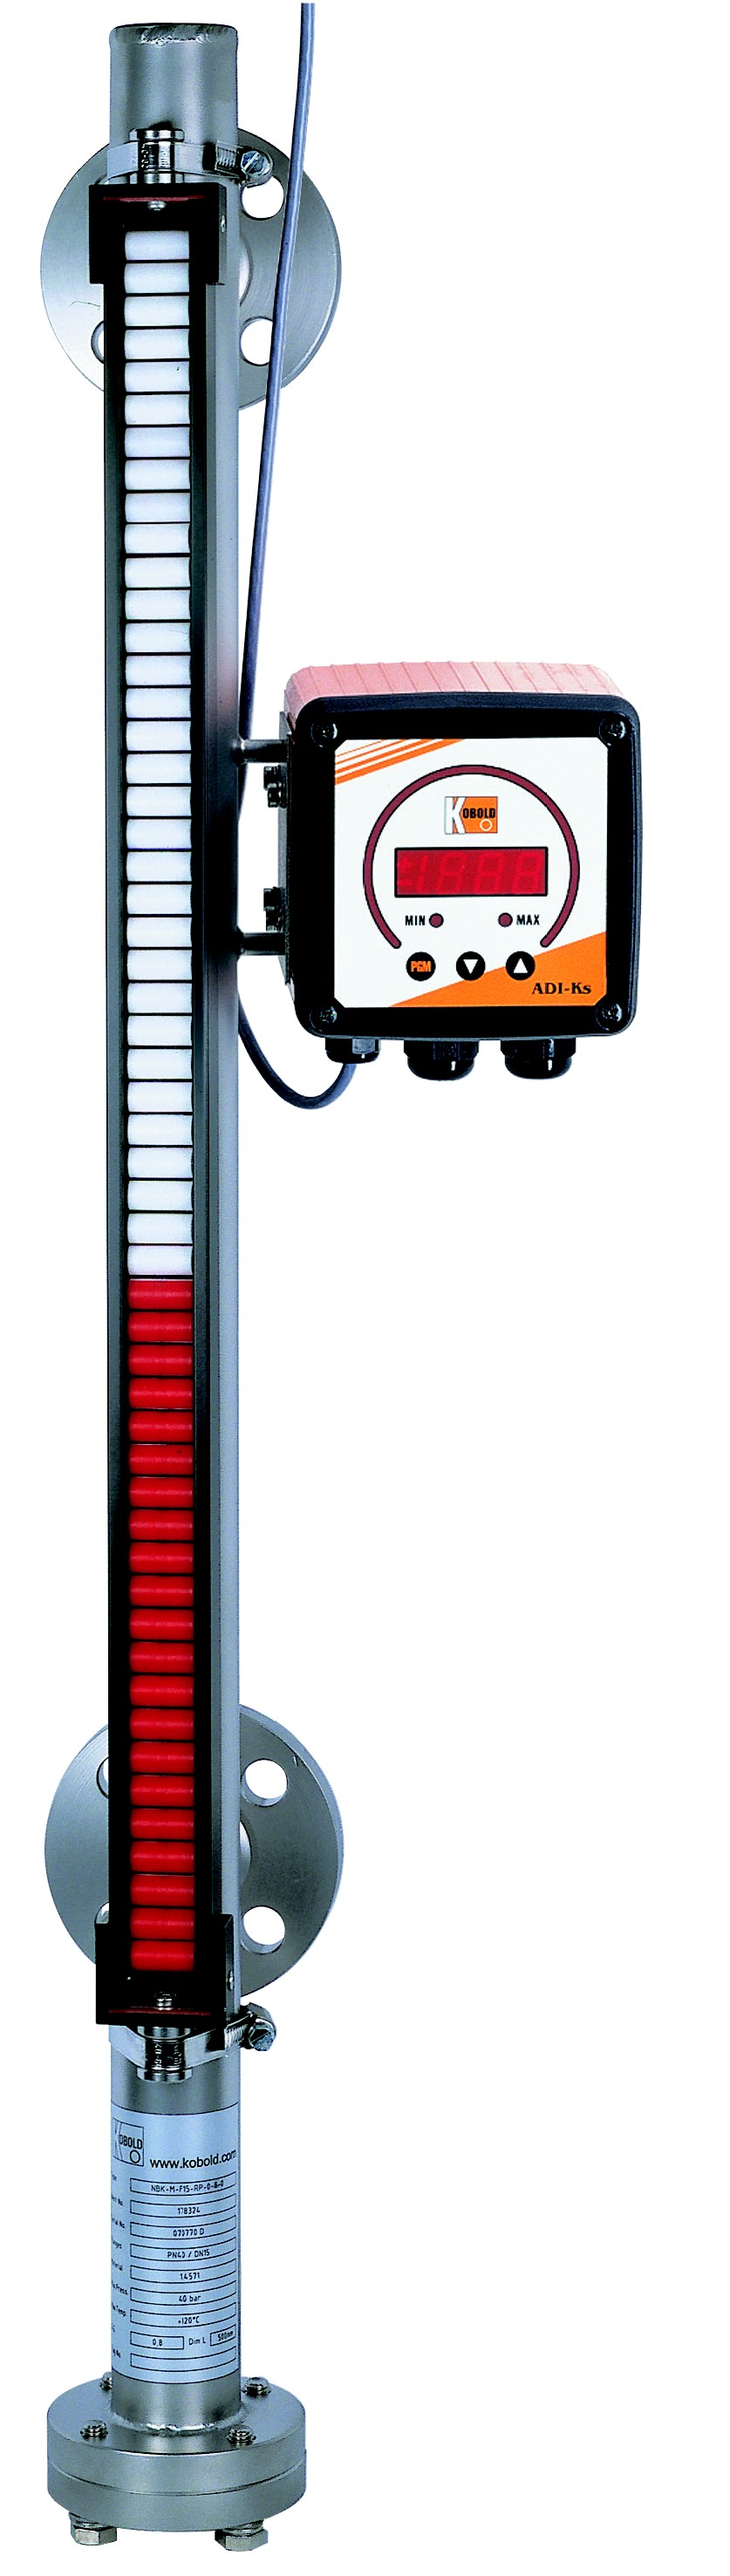 NBK: magnetic level gauge